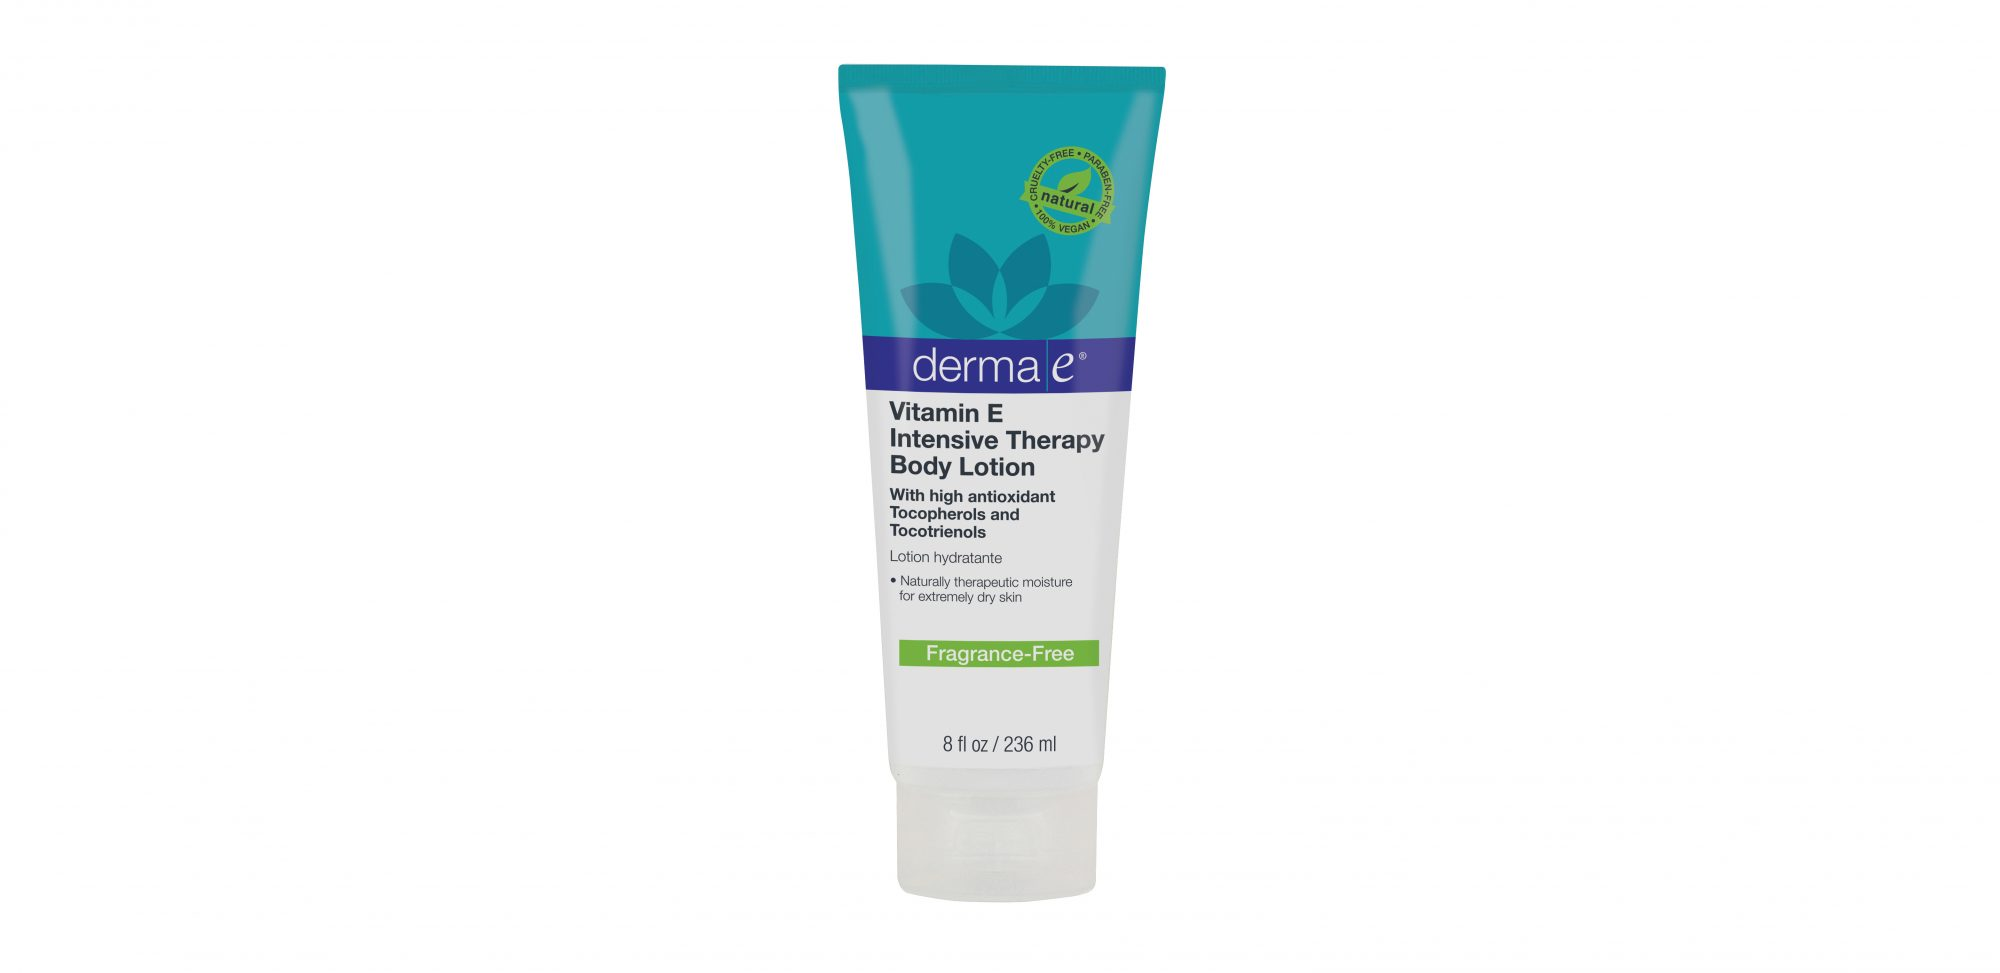 derma e fragrance free vitamin e lotion